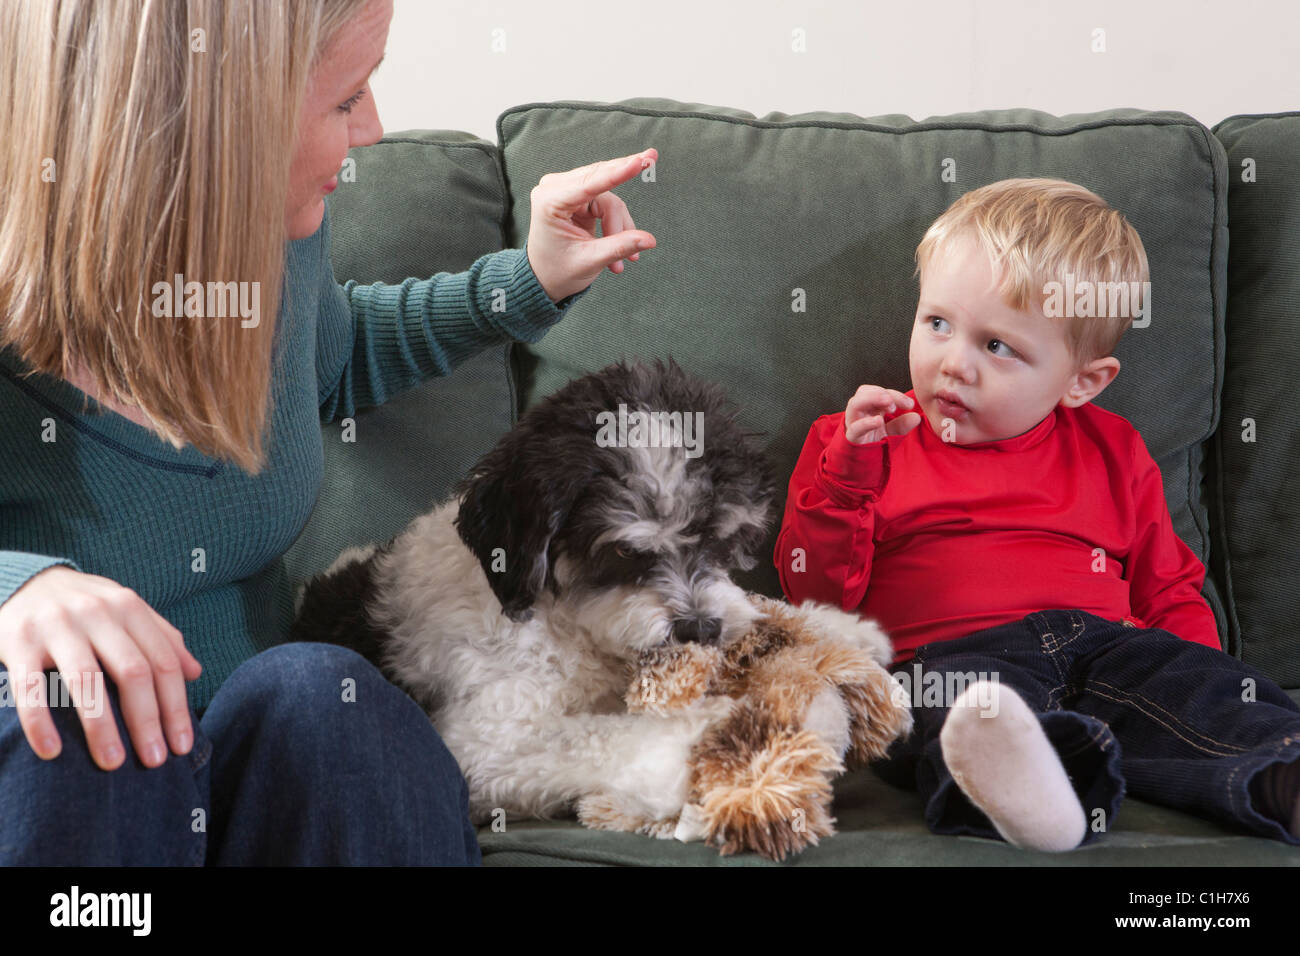 Woman signing the word 'No' in American Sign Language while communicating with her son - Stock Image